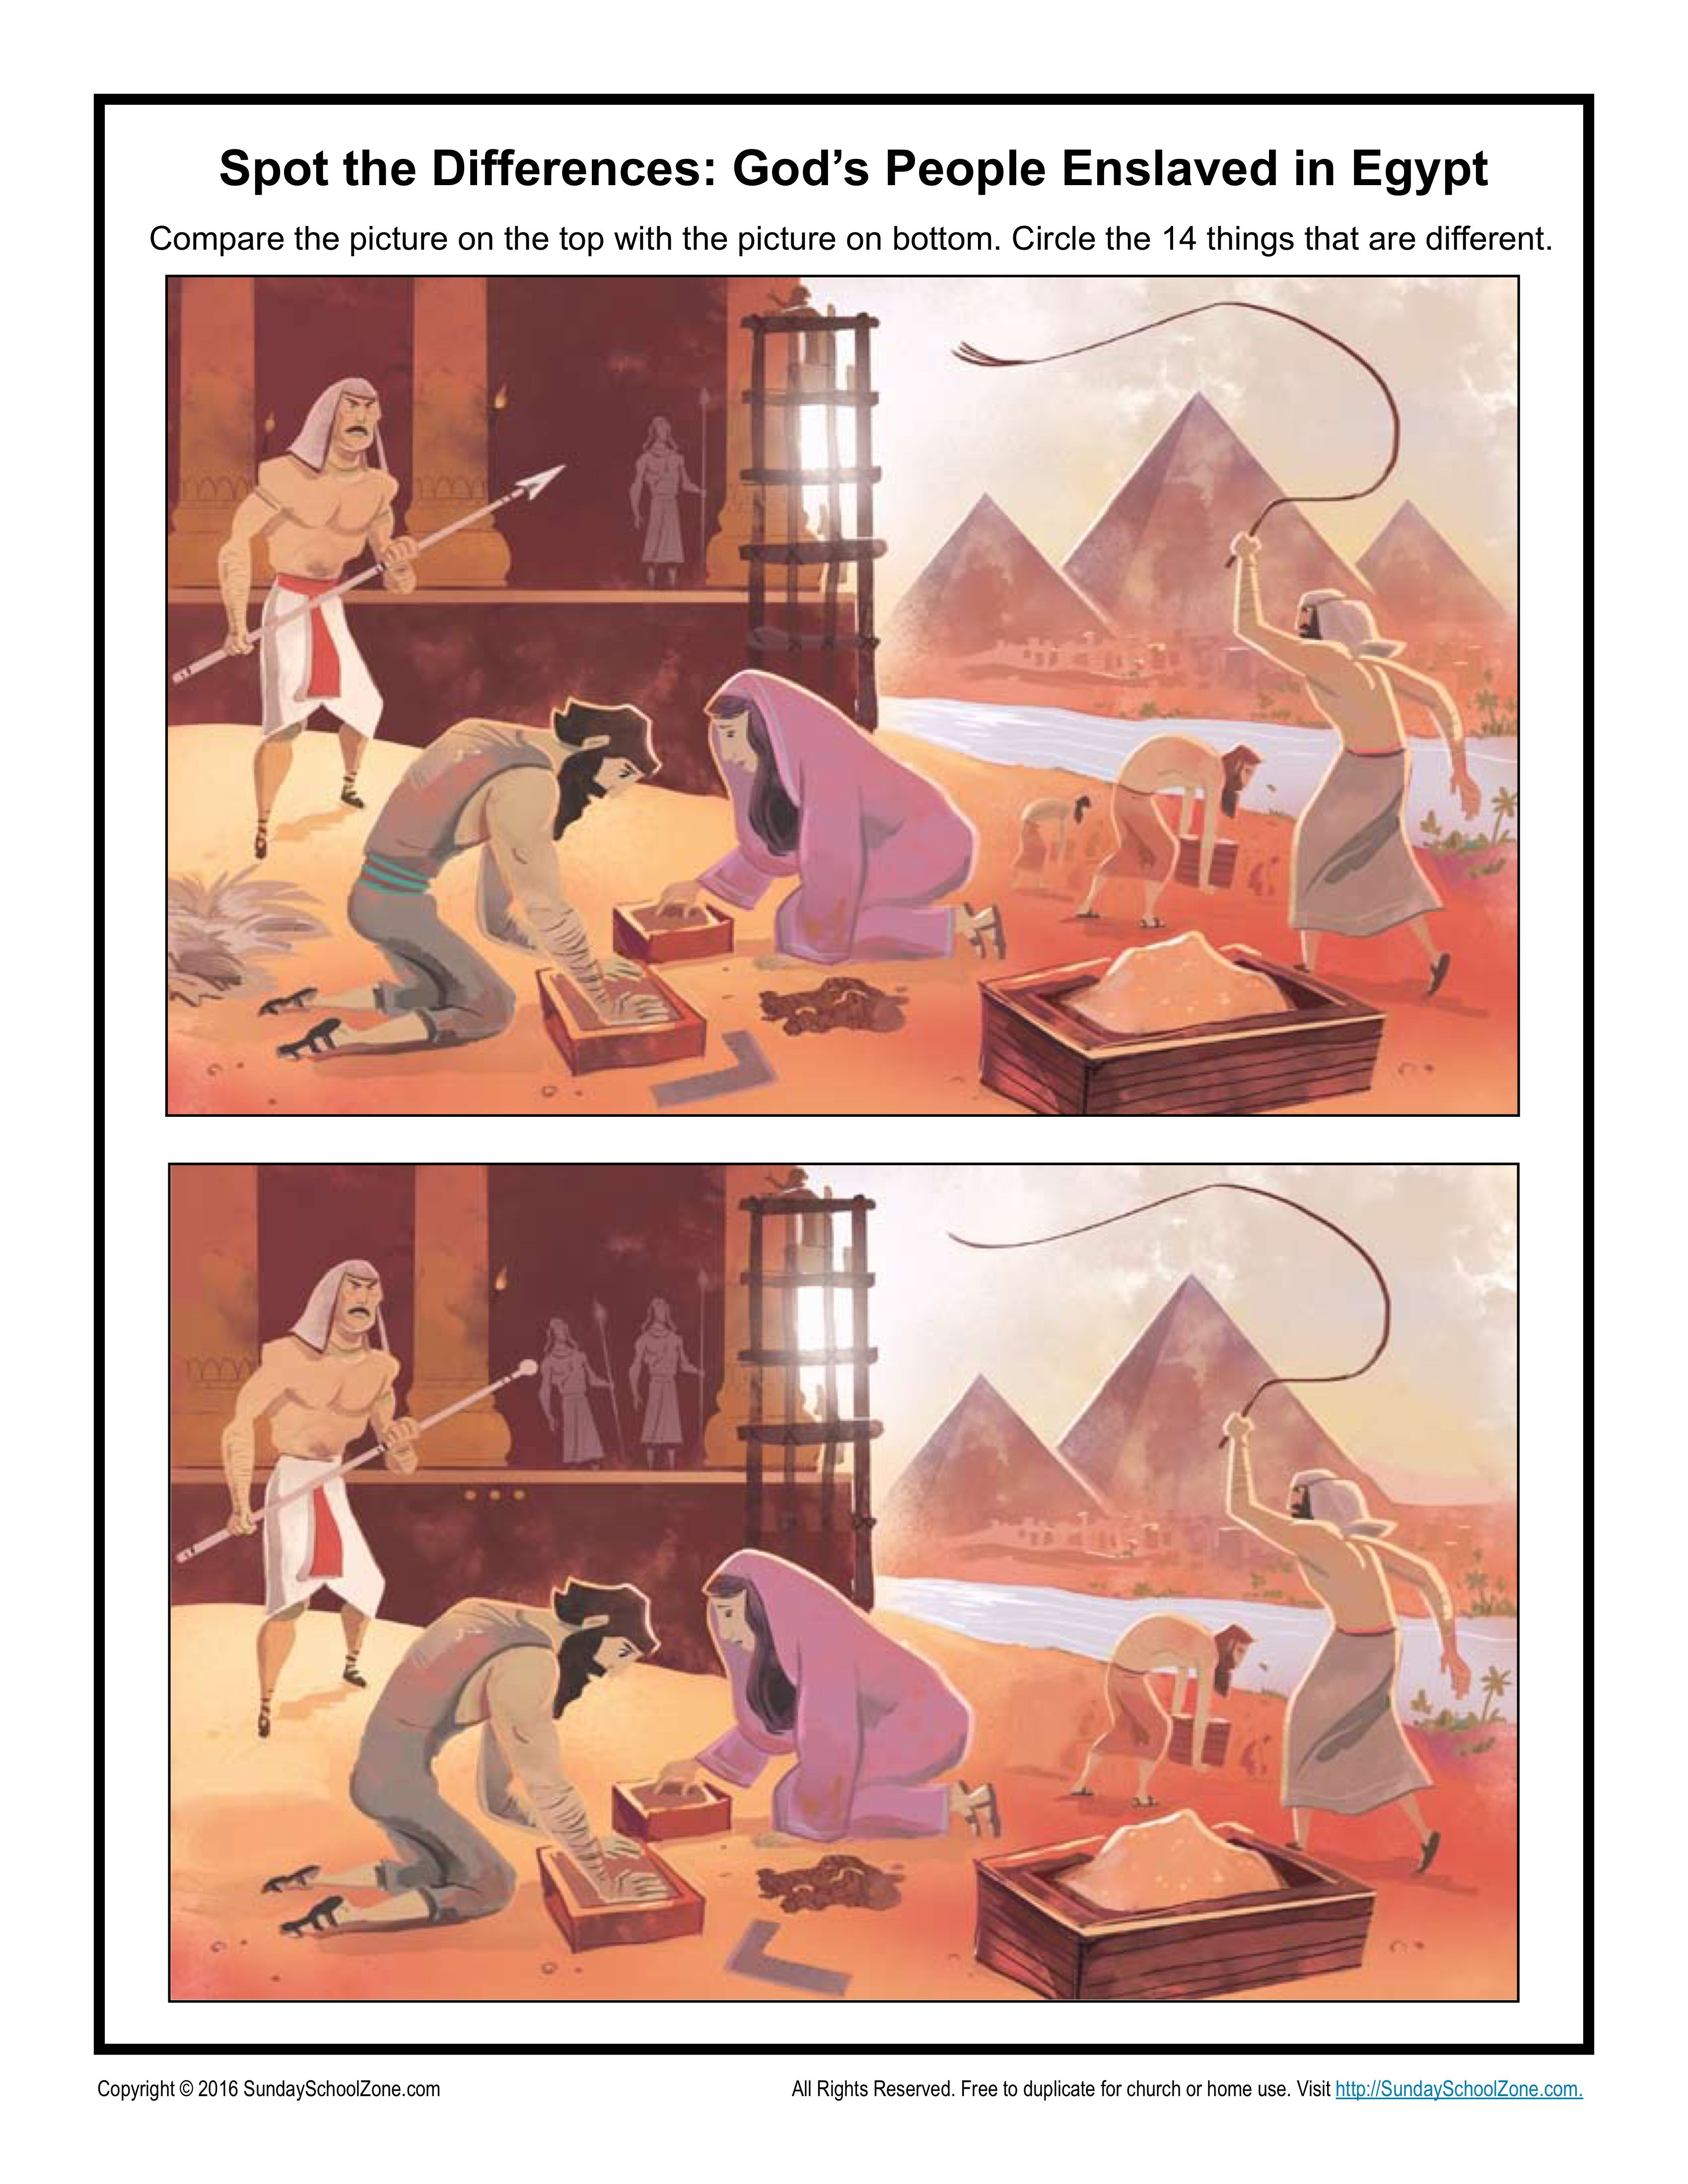 God's People Enslaved in Egypt Spot the Differences | God's